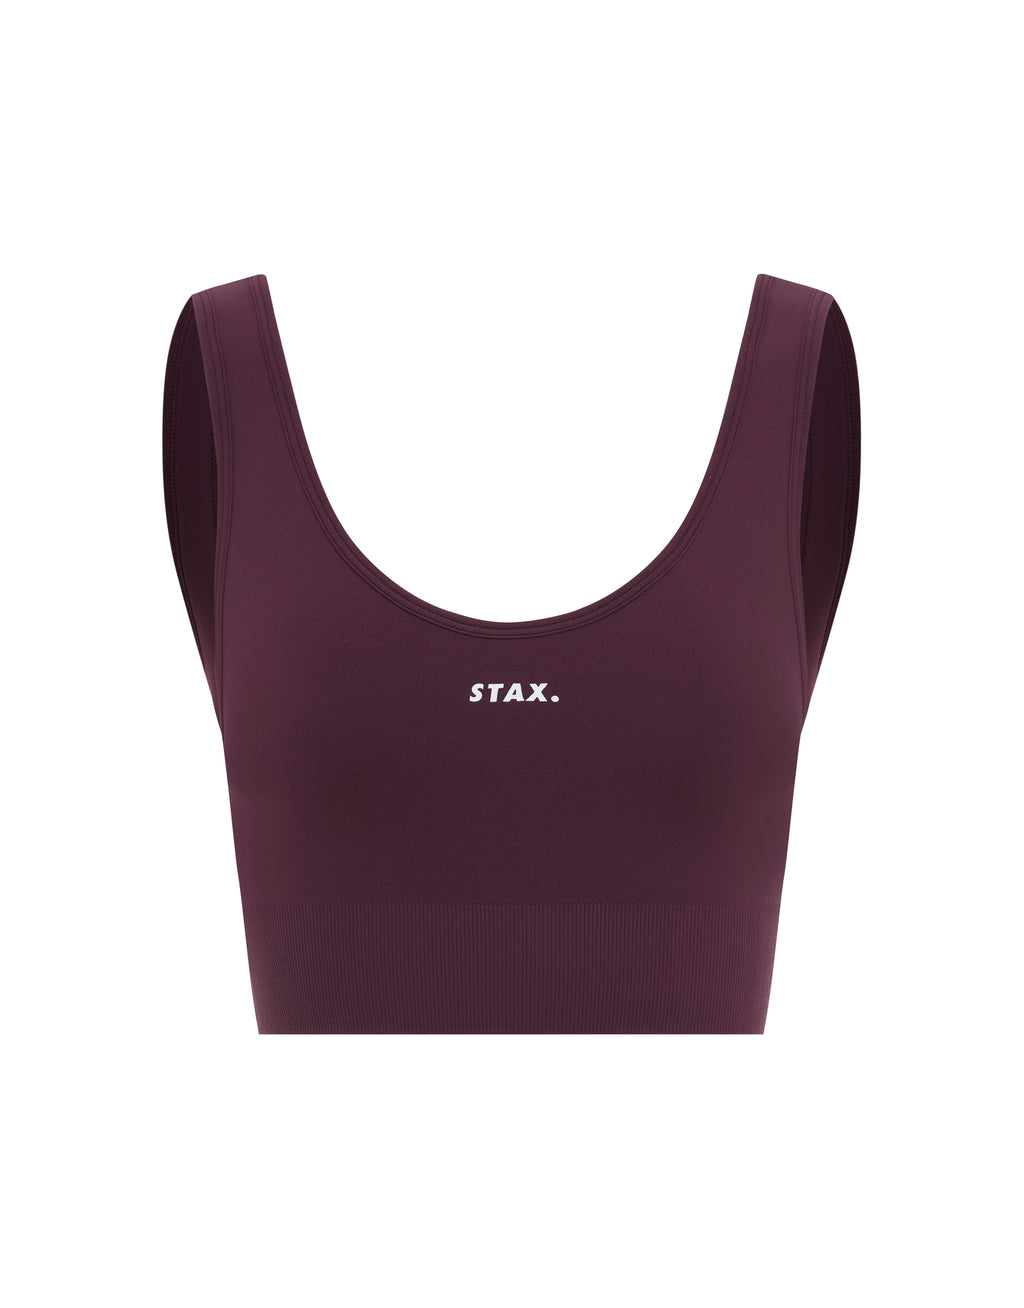 STAX.® TOTE BAG - PERIWINKLE (BLUE)